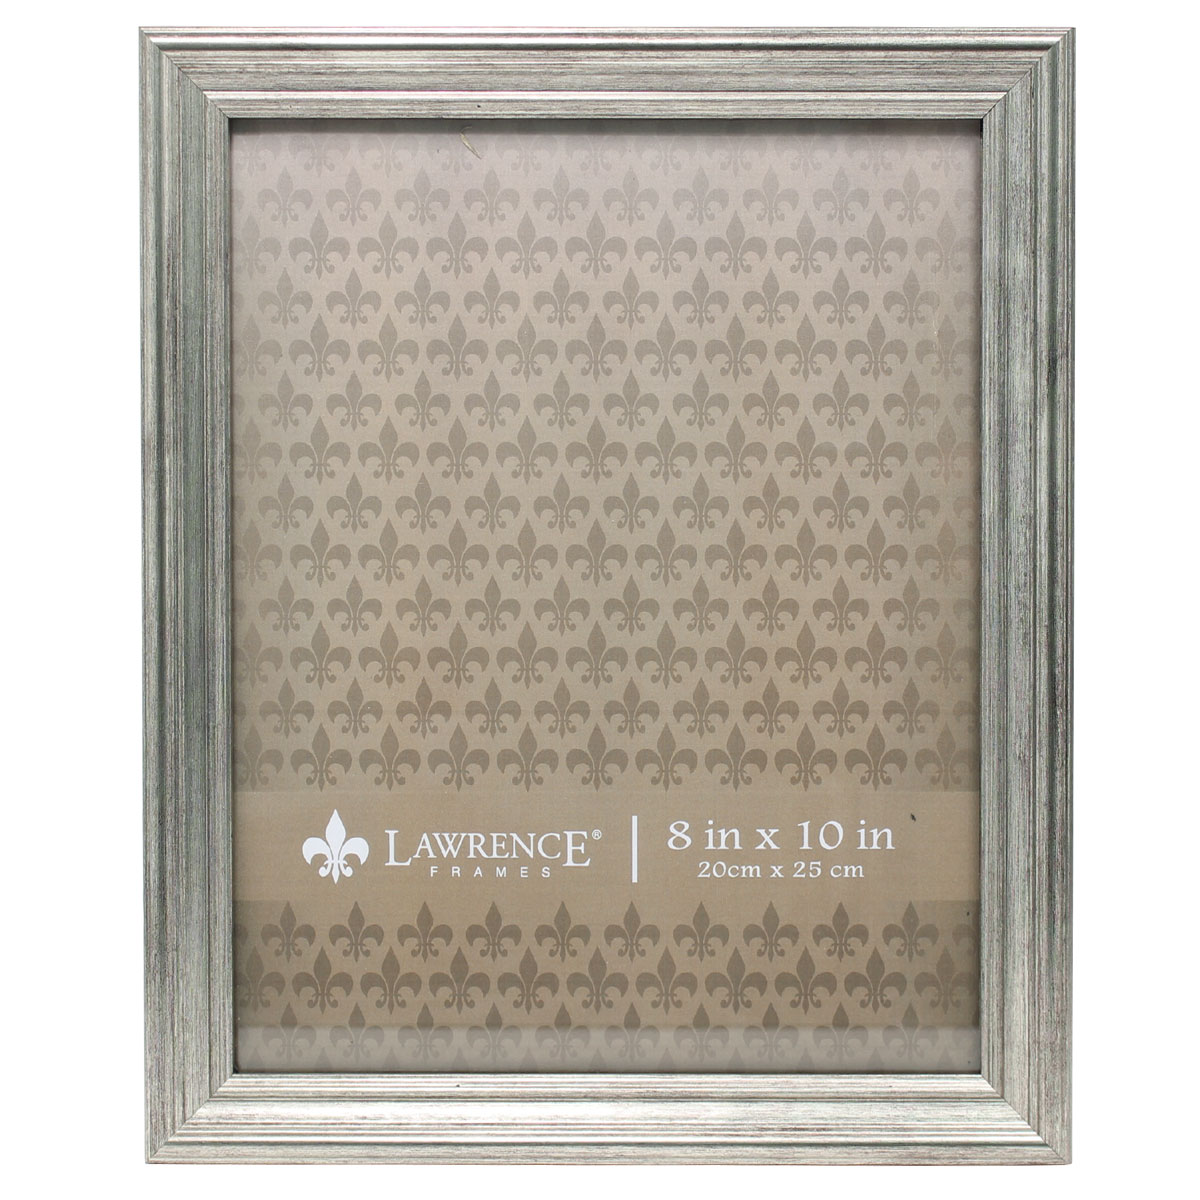 8x10 Sutter Burnished Silver Picture Frame by Lawrence Frames